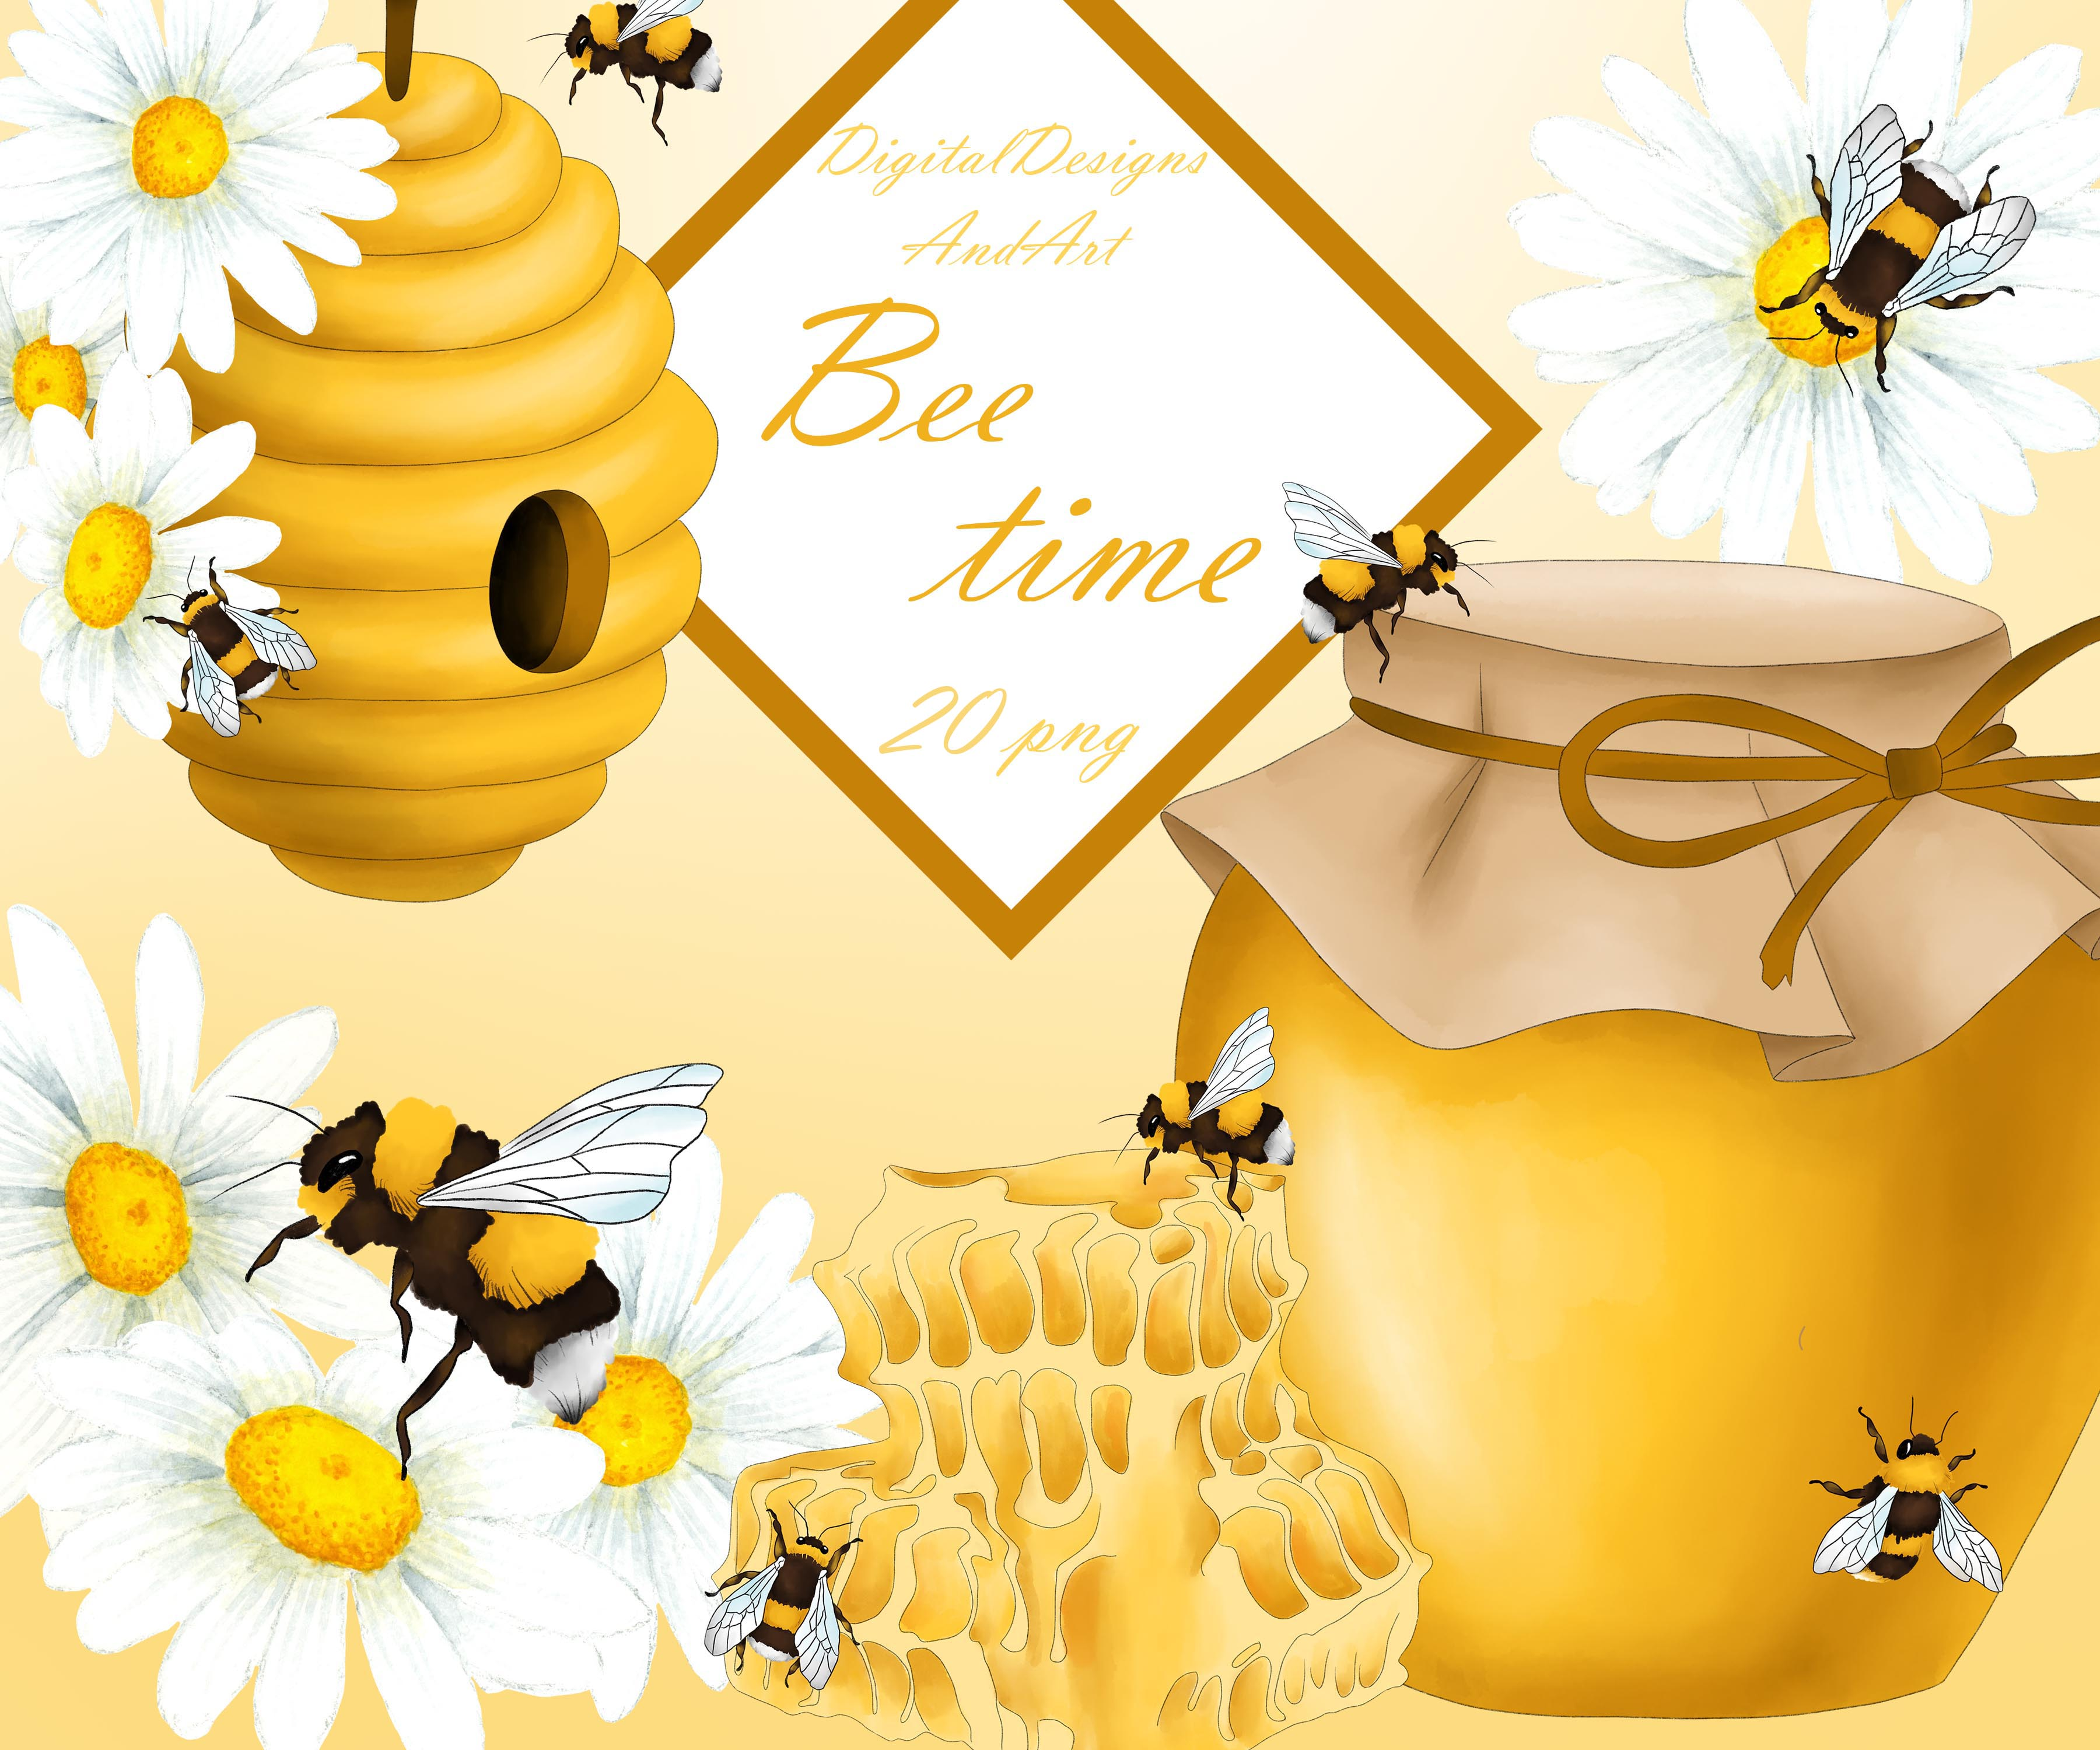 Honey bee clipart example image 1